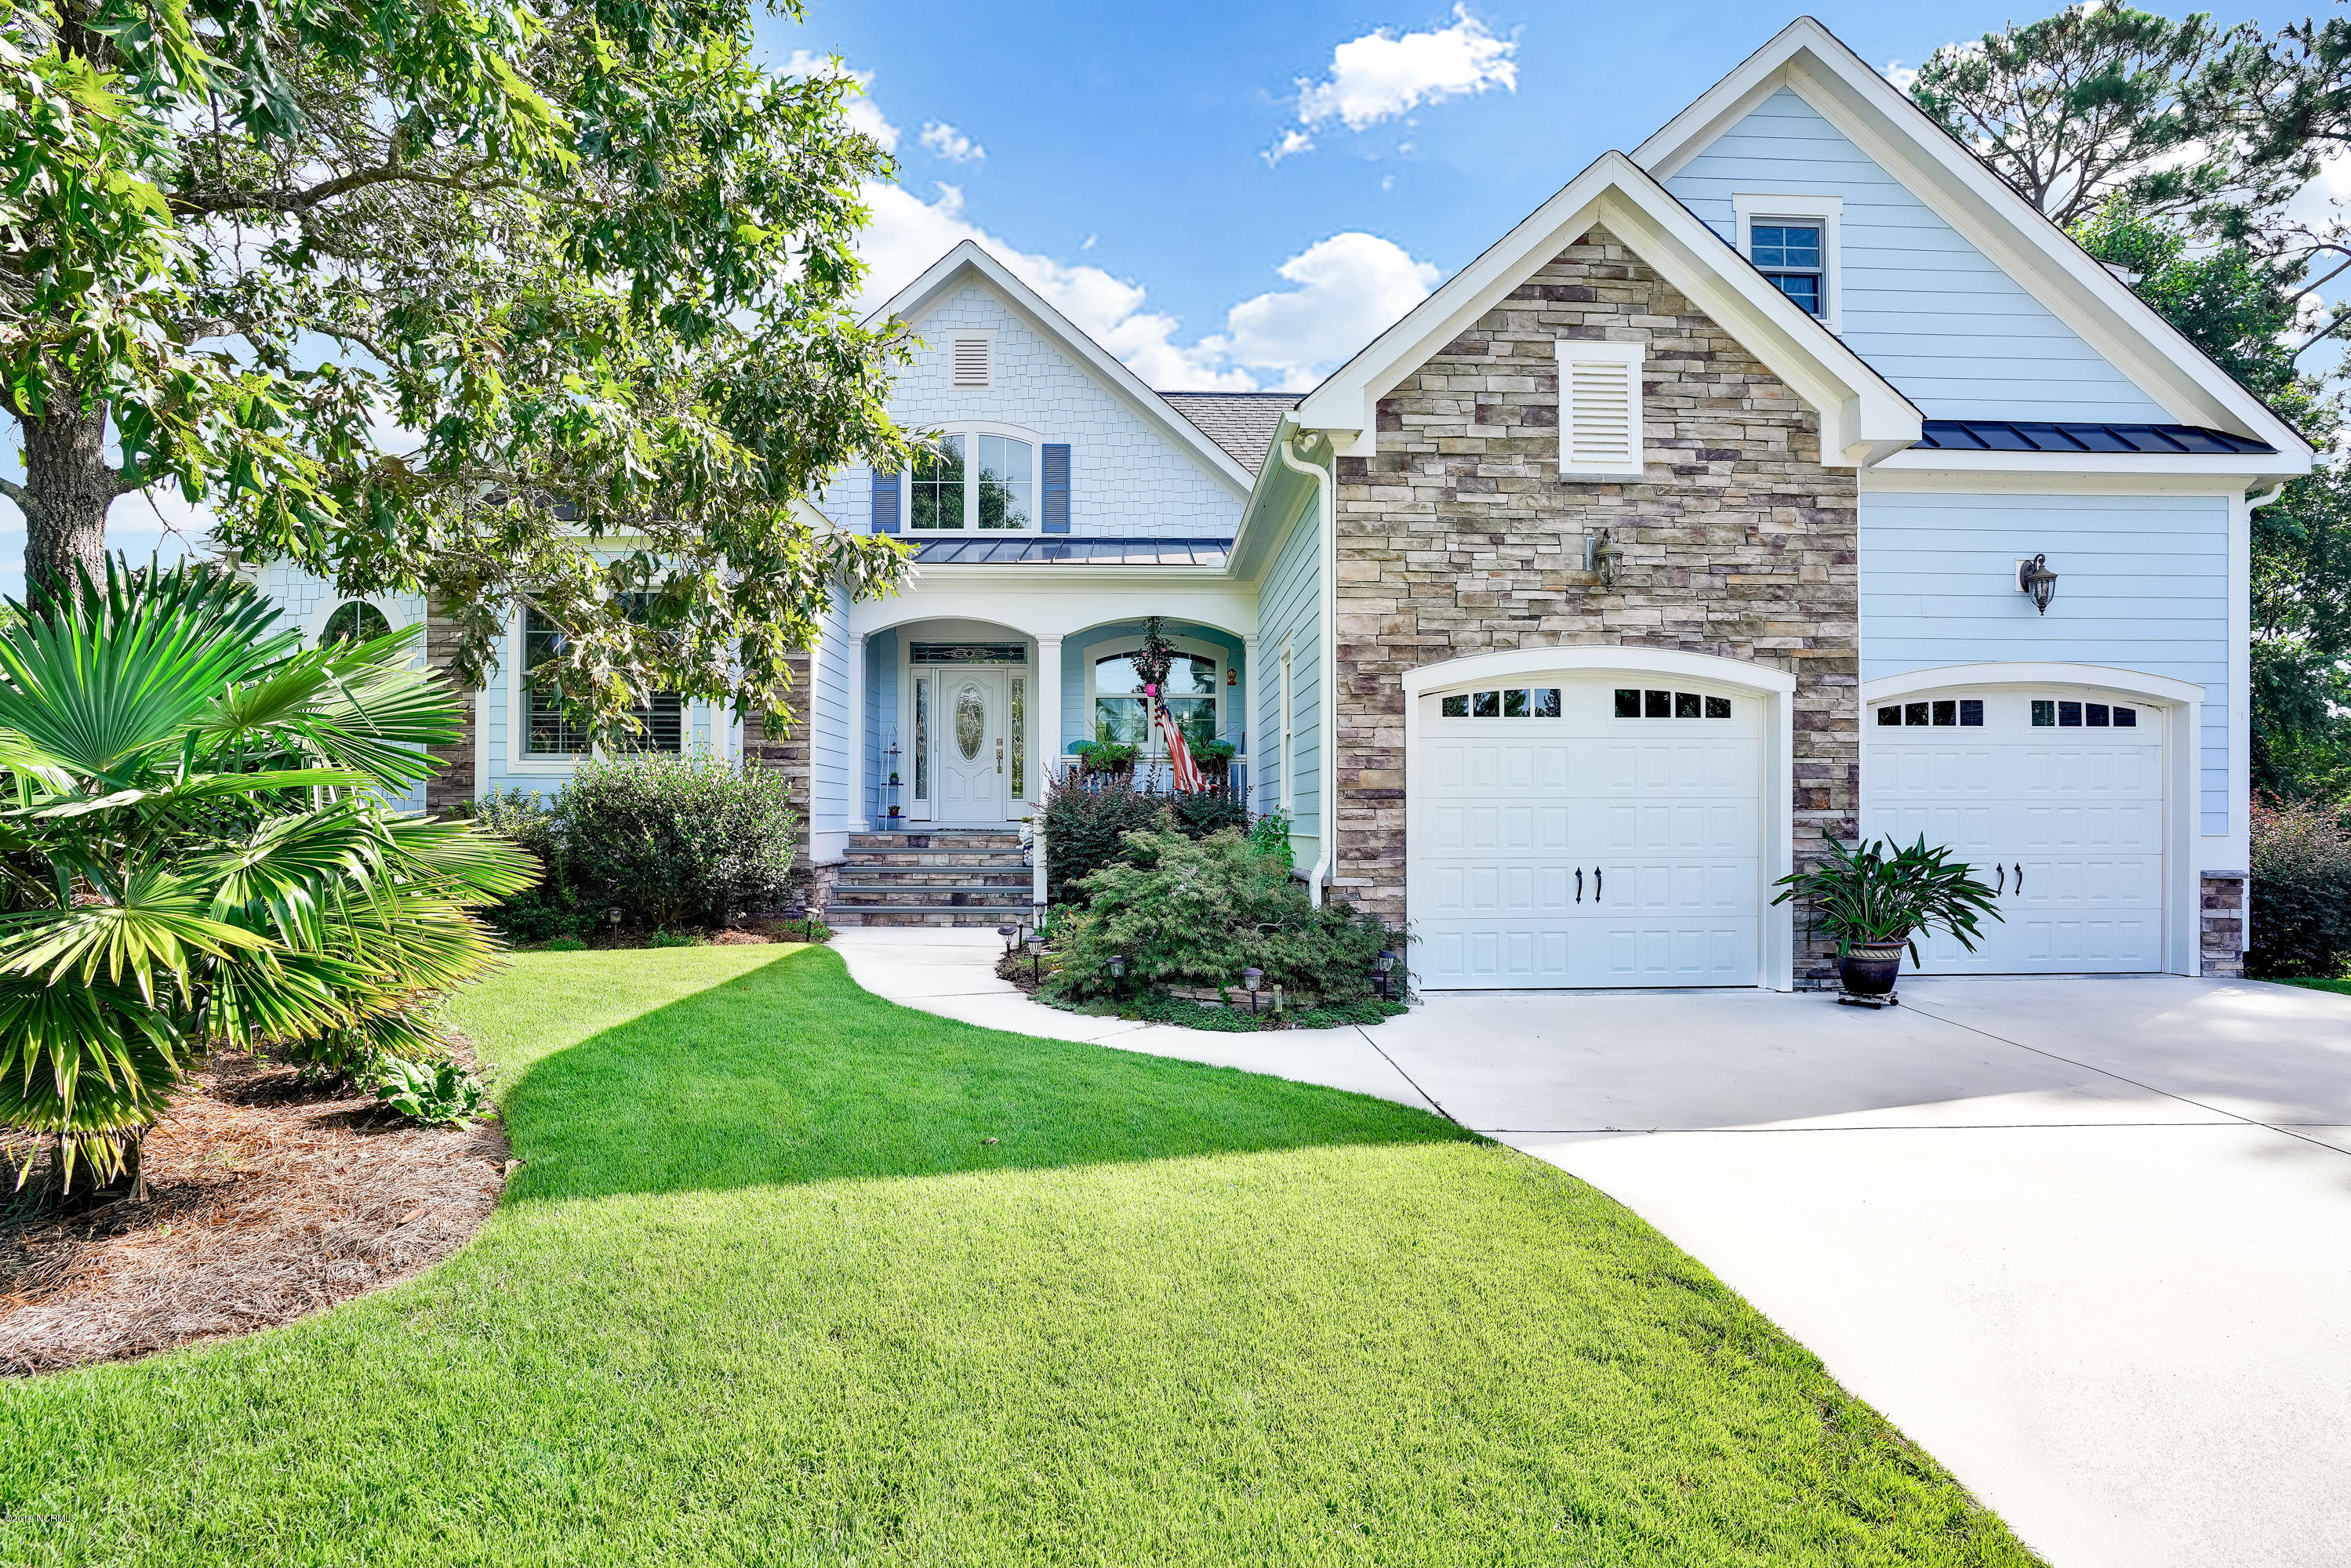 497 Broomsedge Court Bolivia, NC 28422